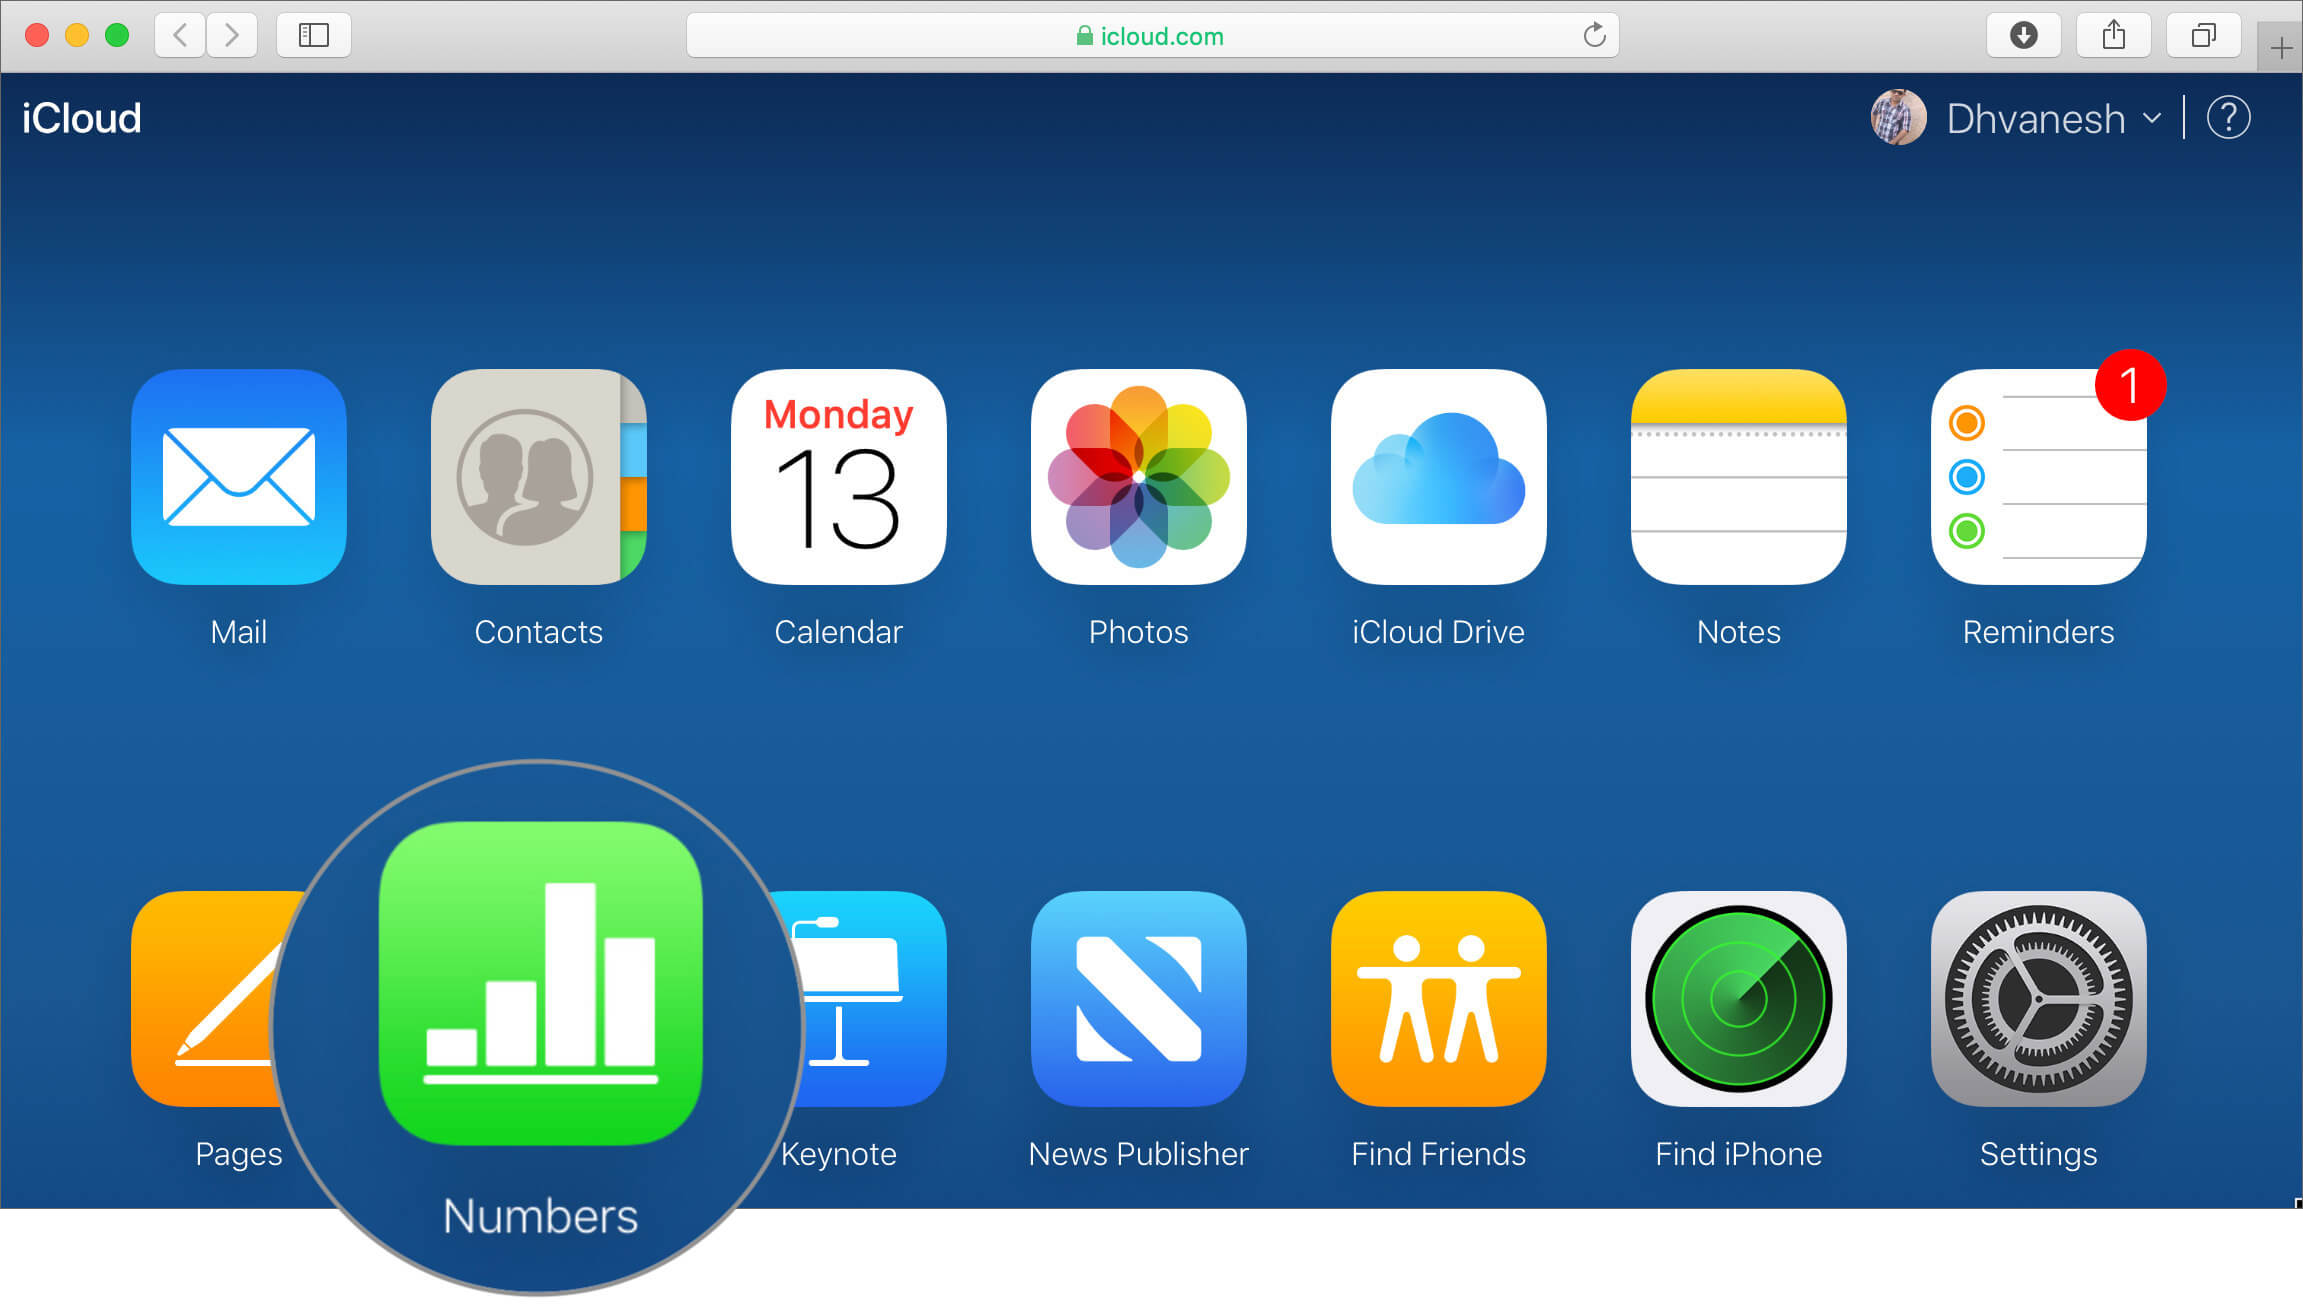 Click on Numbers that particular iWork app in iCloud